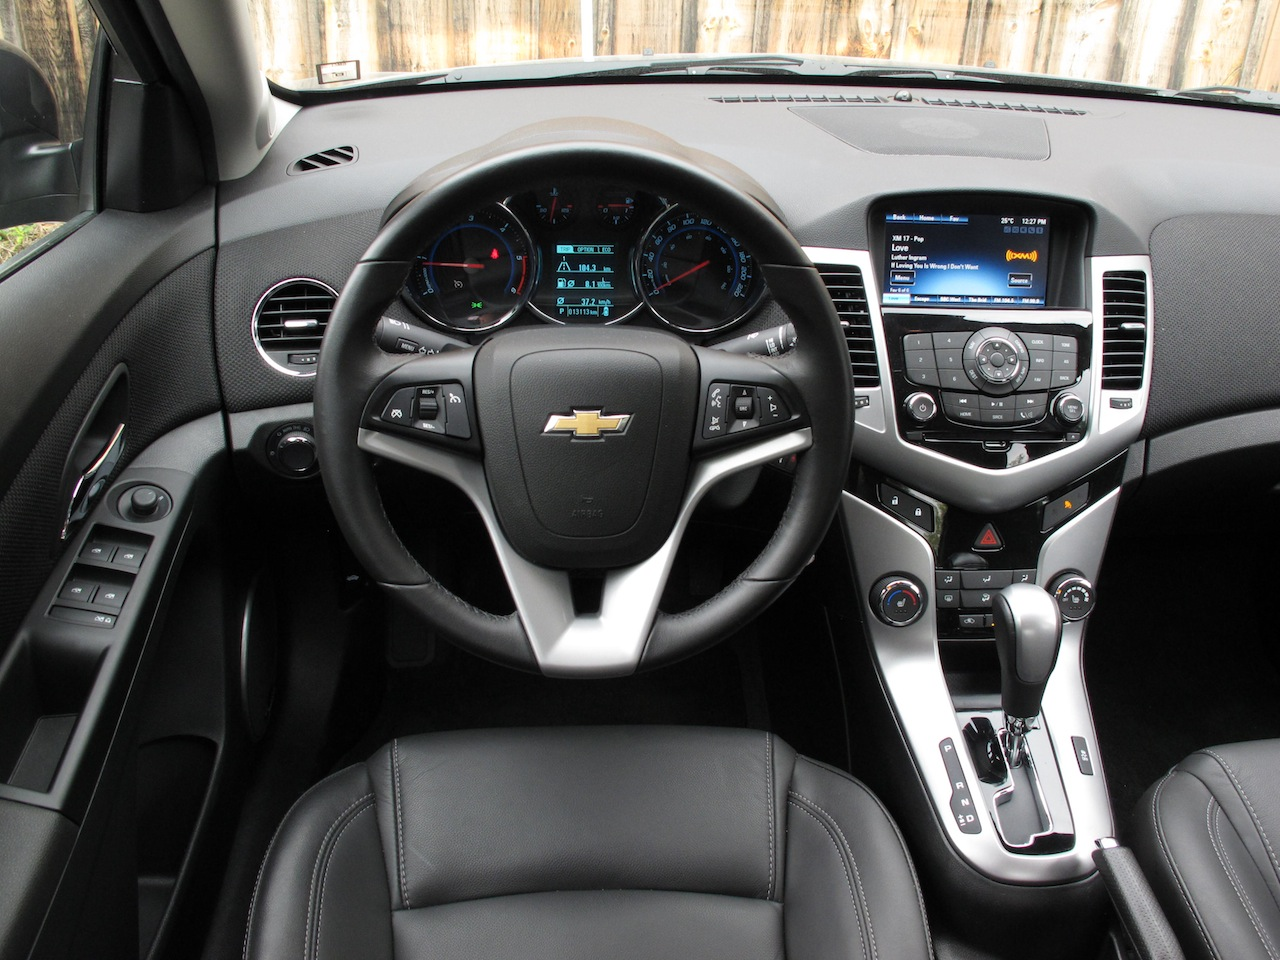 2014  Chevrolet Cruze Diesel Review  Cars Photos Test Drives and Reviews  Canadian Auto